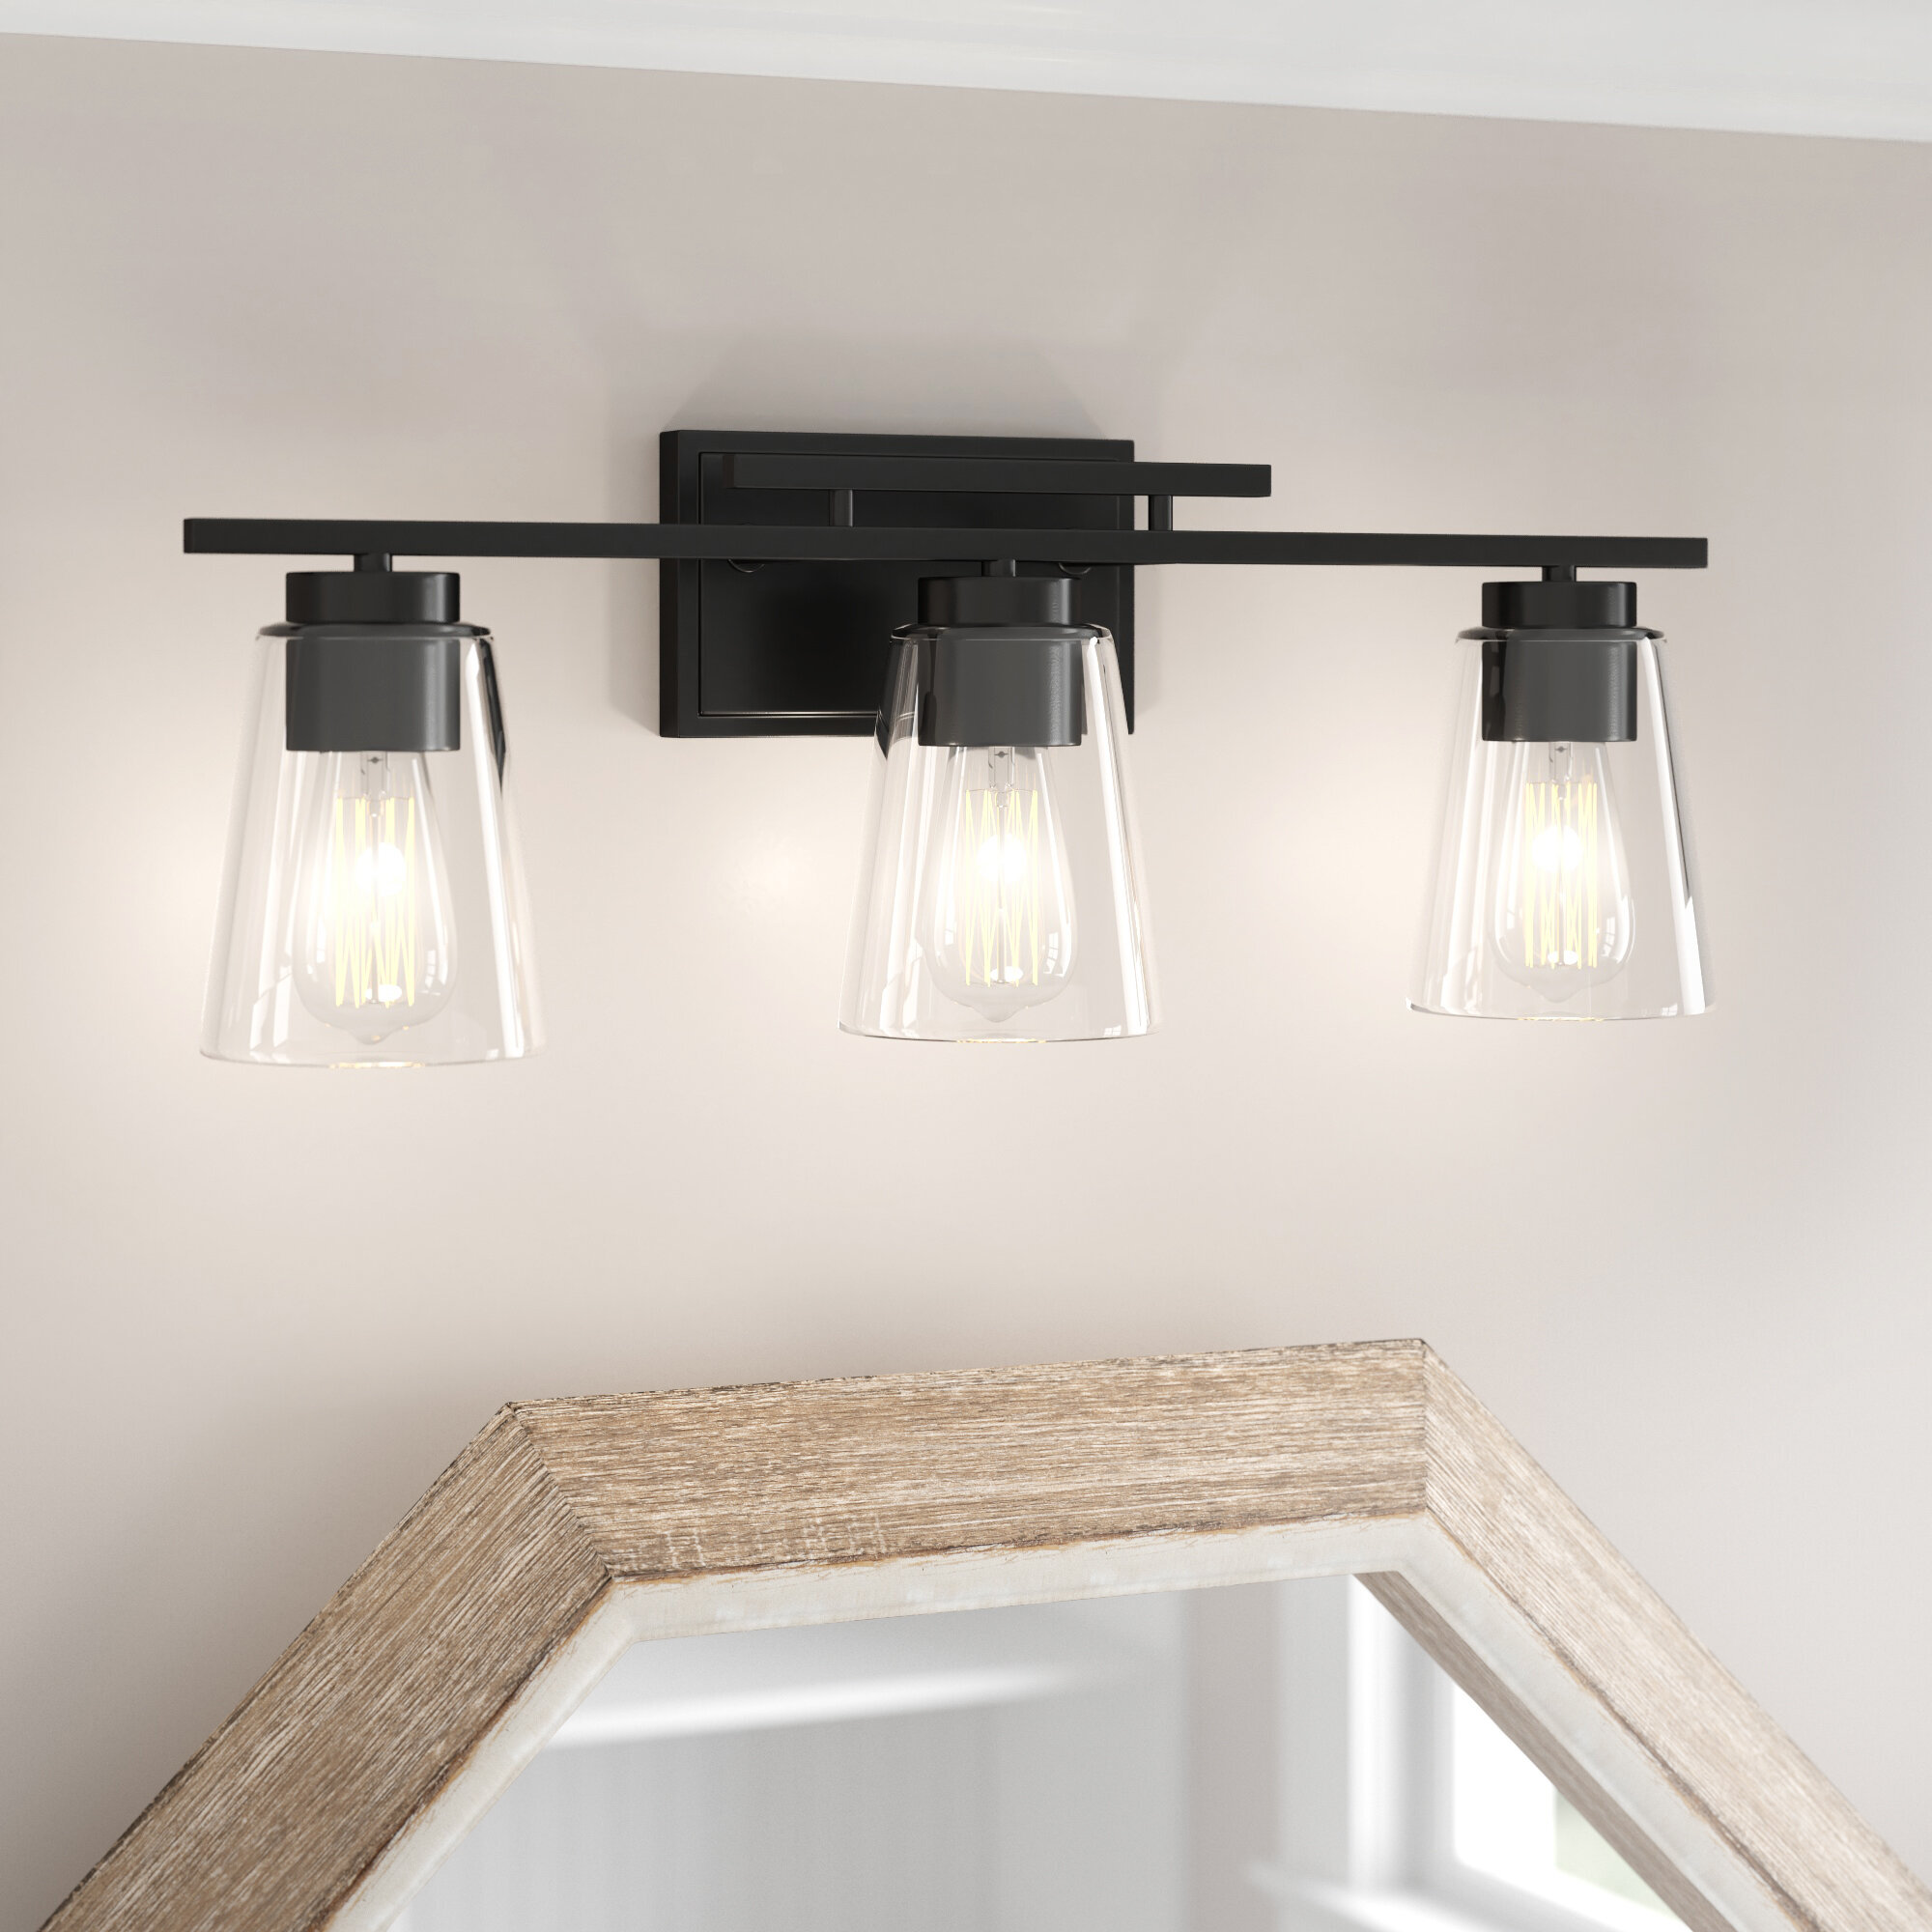 Wayfair Black Vanity Lights You Ll Love In 2021